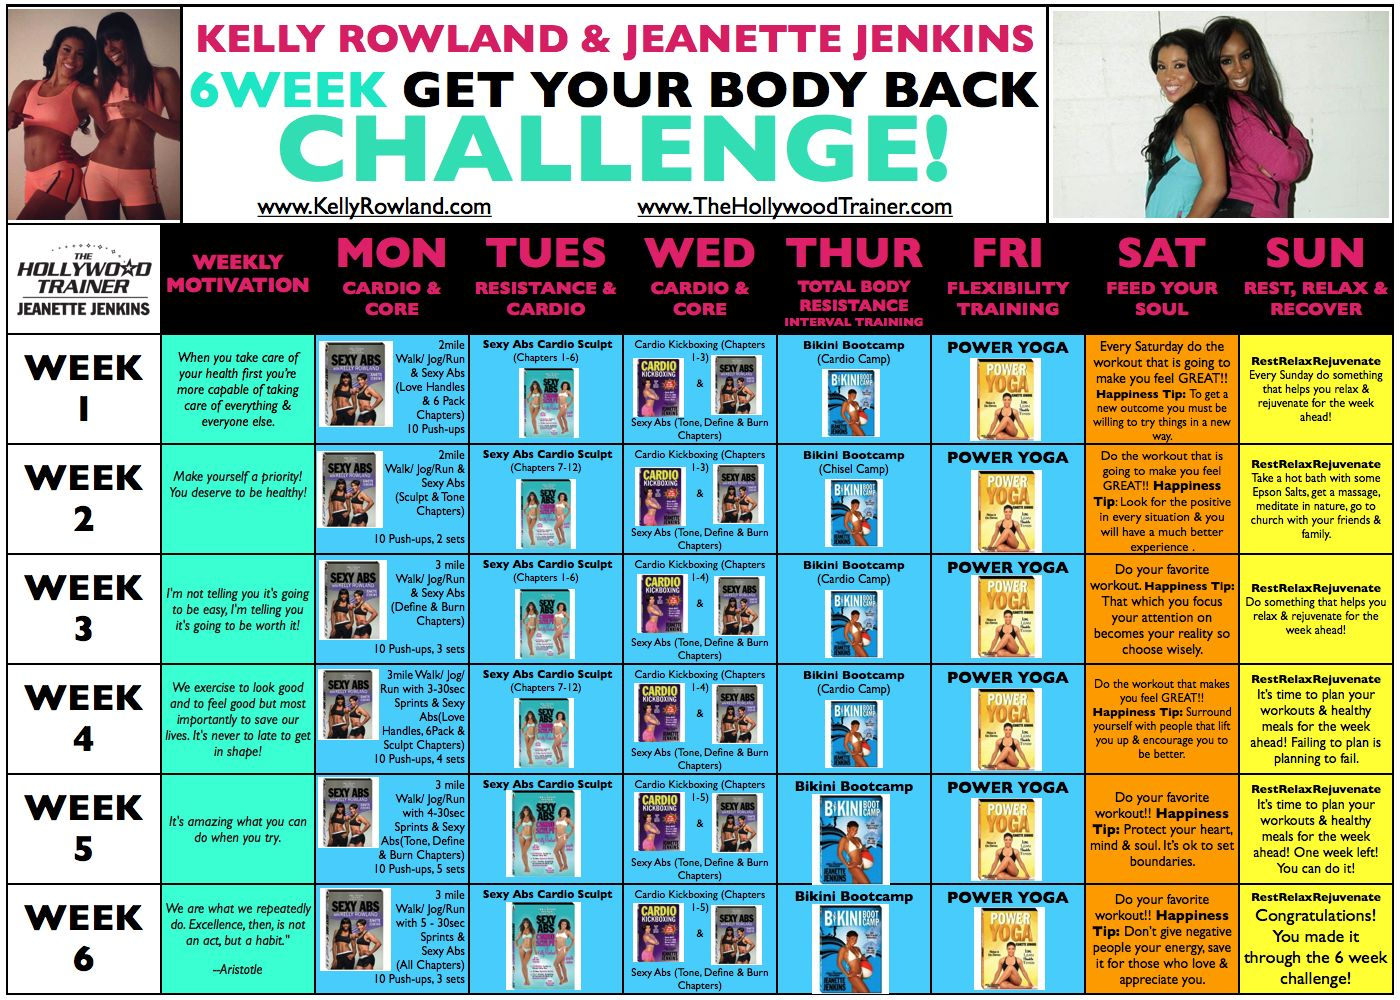 Sacs Get Your Body Back 6 Week Challenge Copy 001 Jpg 1400 1000 Jeanette Jenkins 6 Week Challenge How I Lost Weight